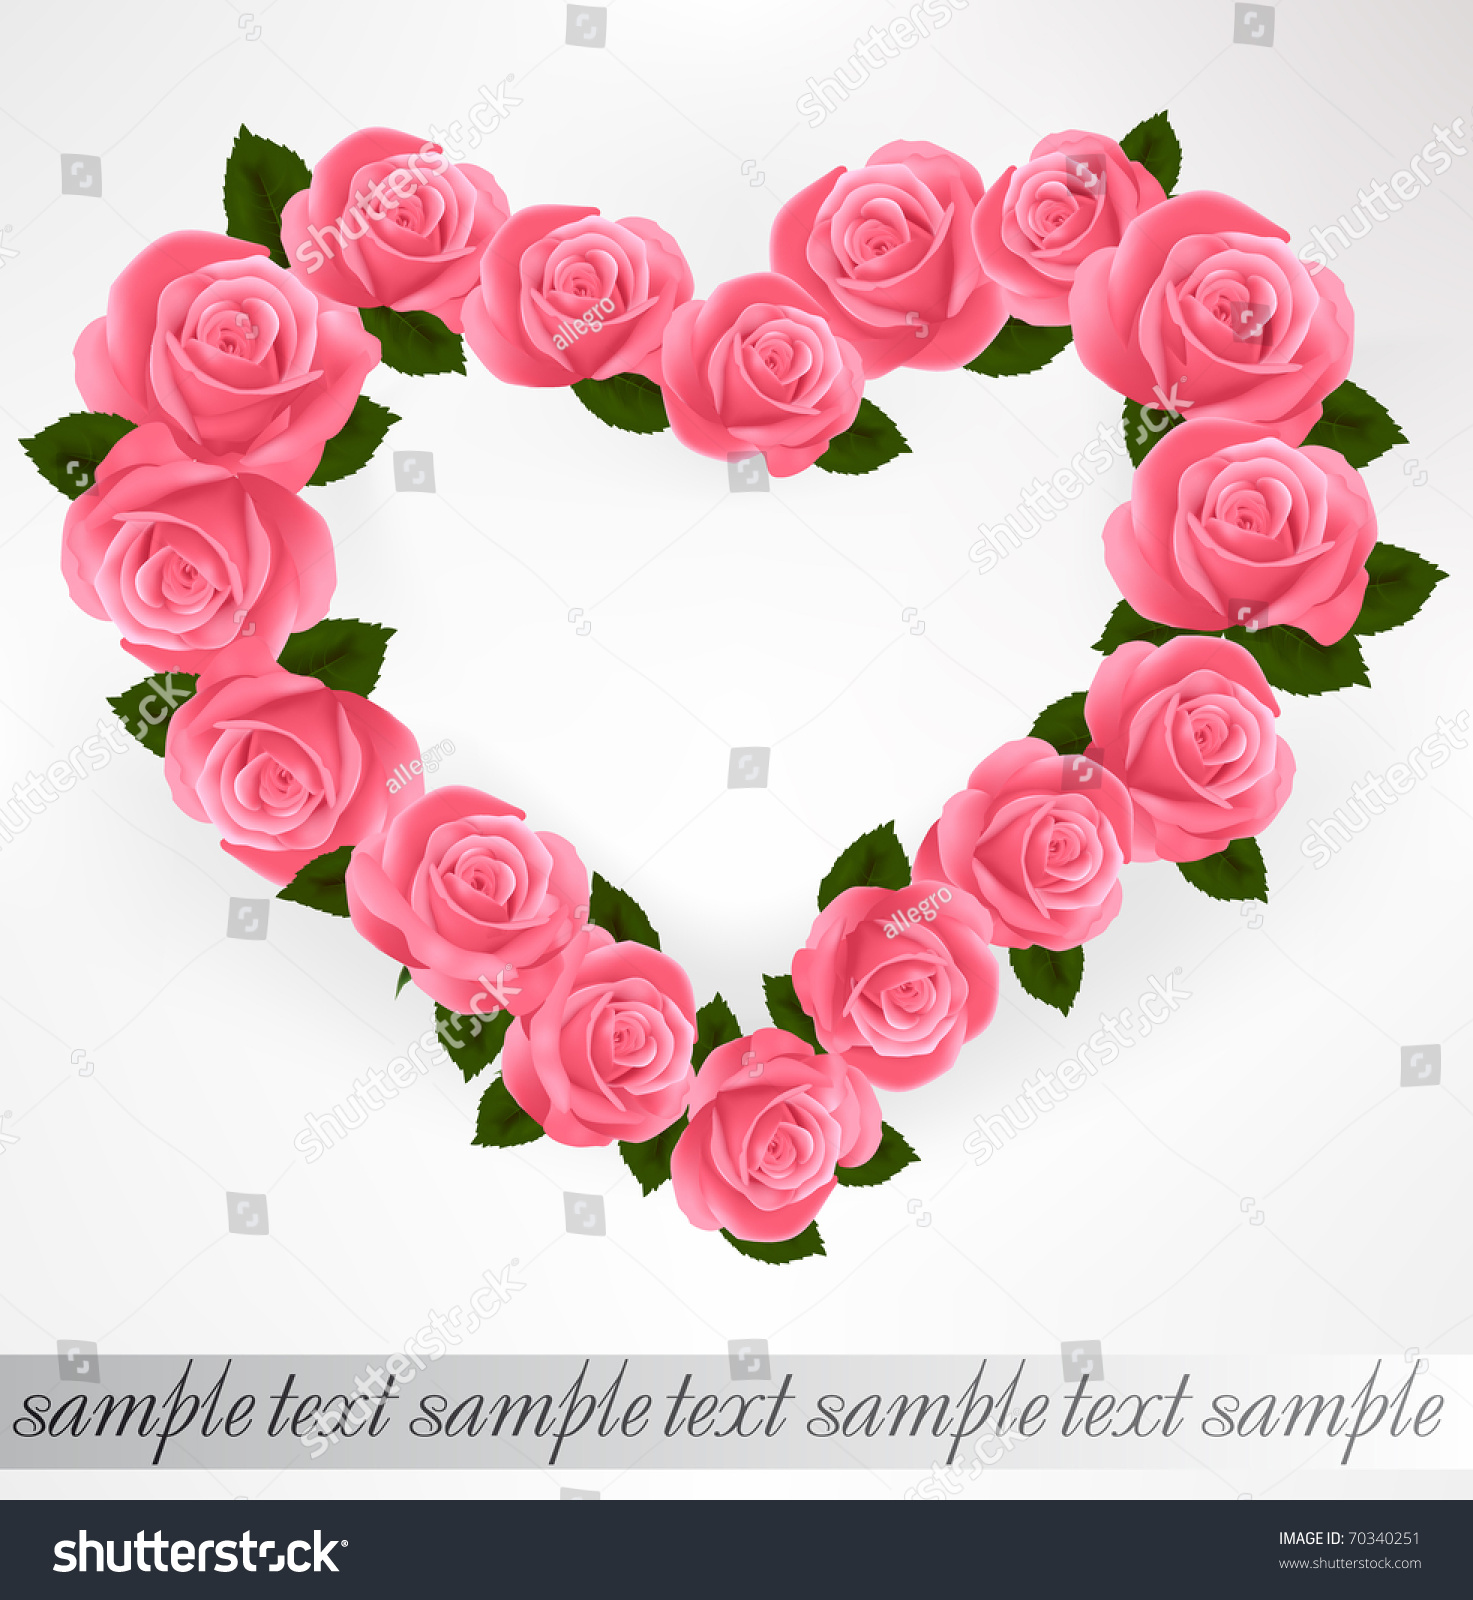 Pink Roses Heart Shape. Vector Illustration. - 70340251 : Shutterstock Pink Roses And Hearts